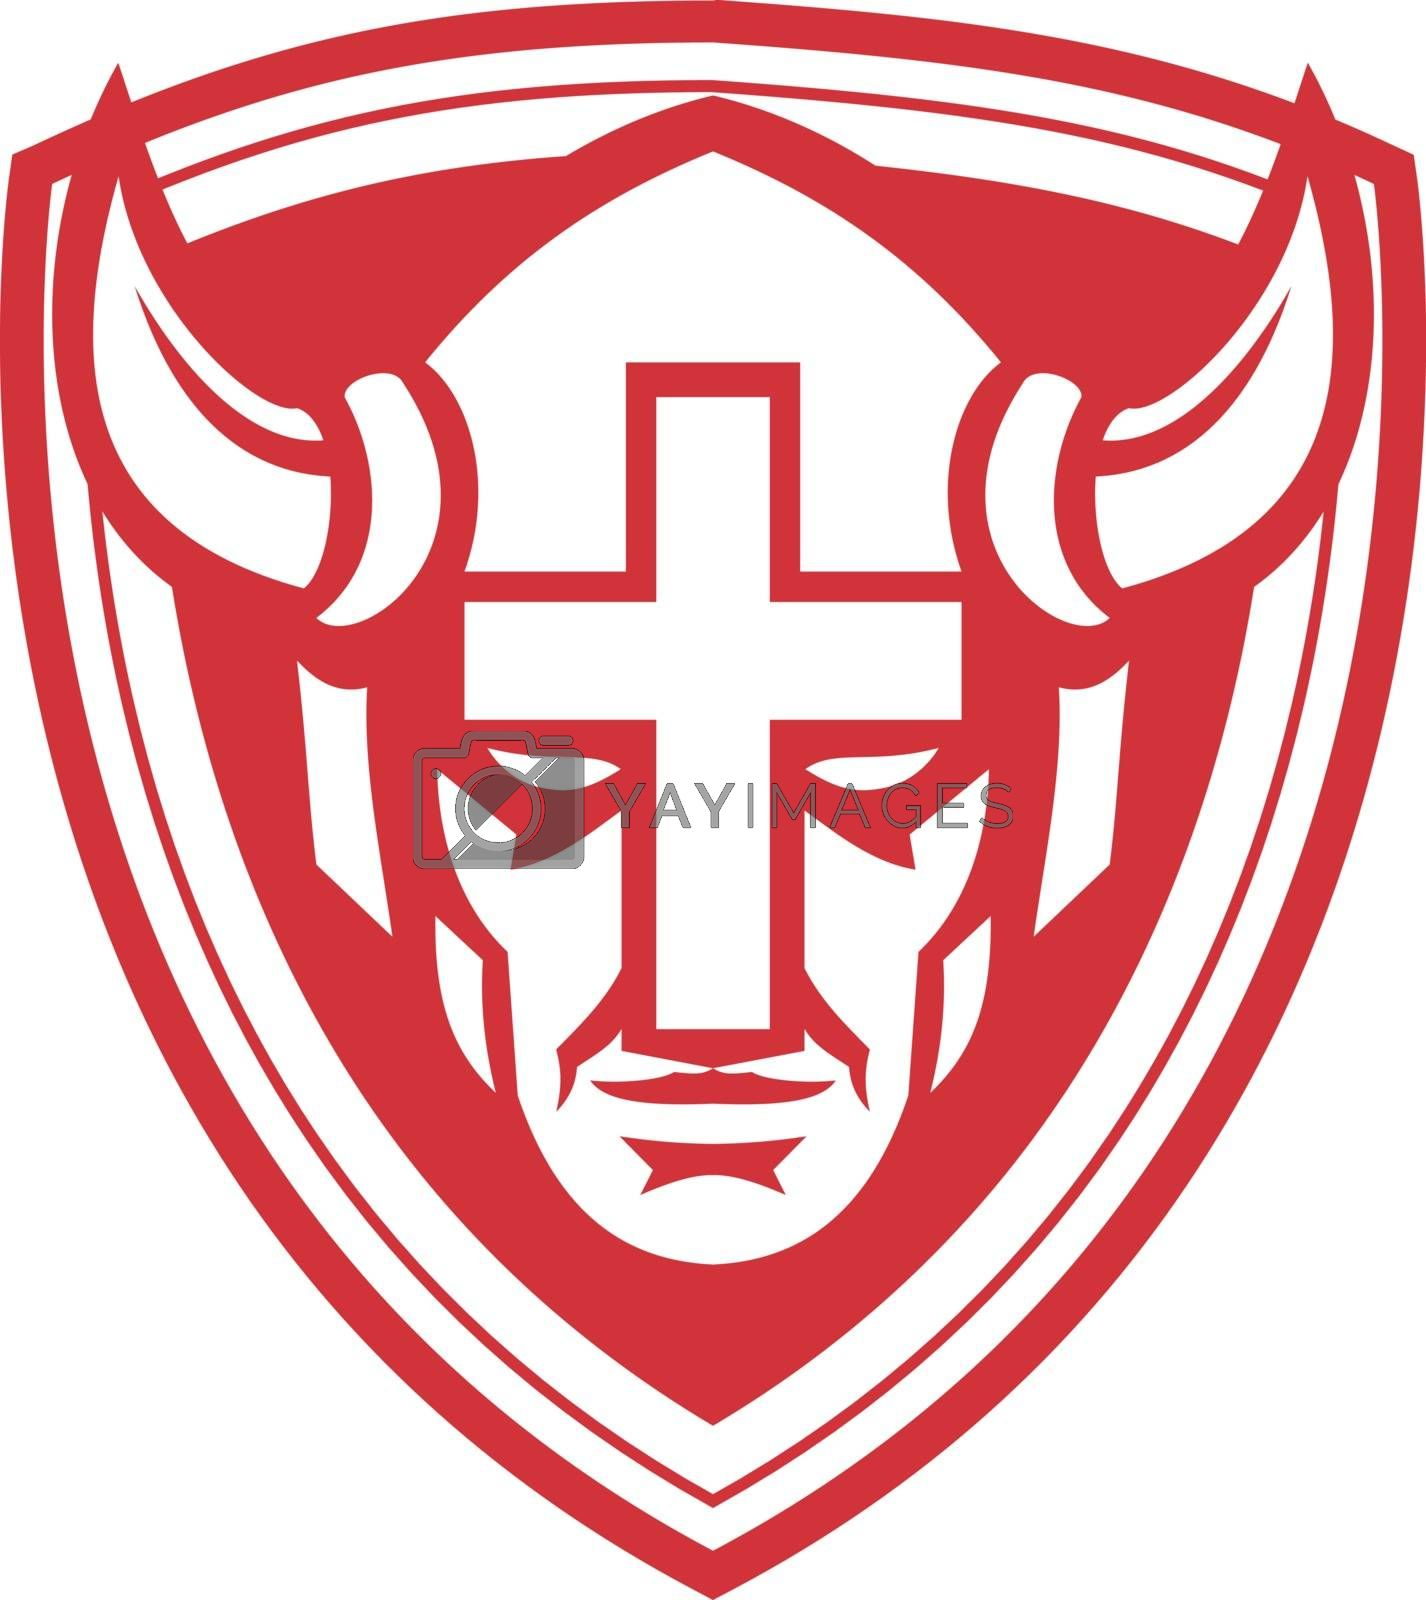 Christian Viking Shield Mascot by patrimonio